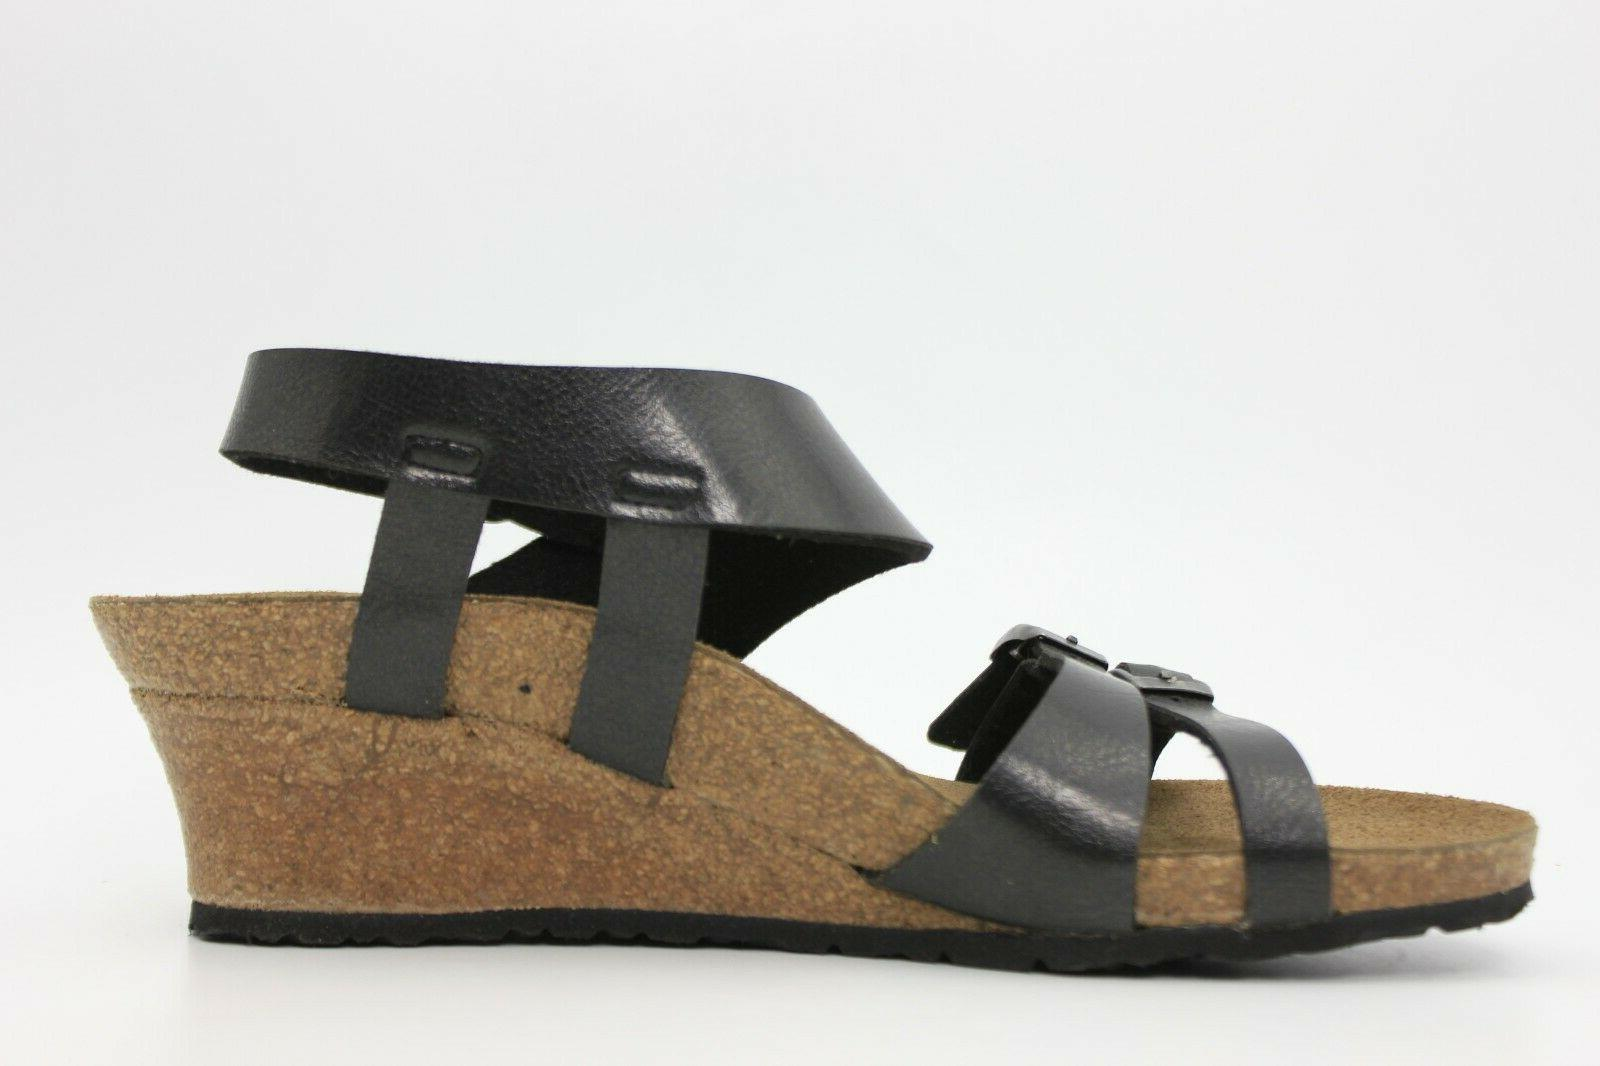 PAPILLIO By Birkenstock Soley leather Wedge Sandals Size NEW